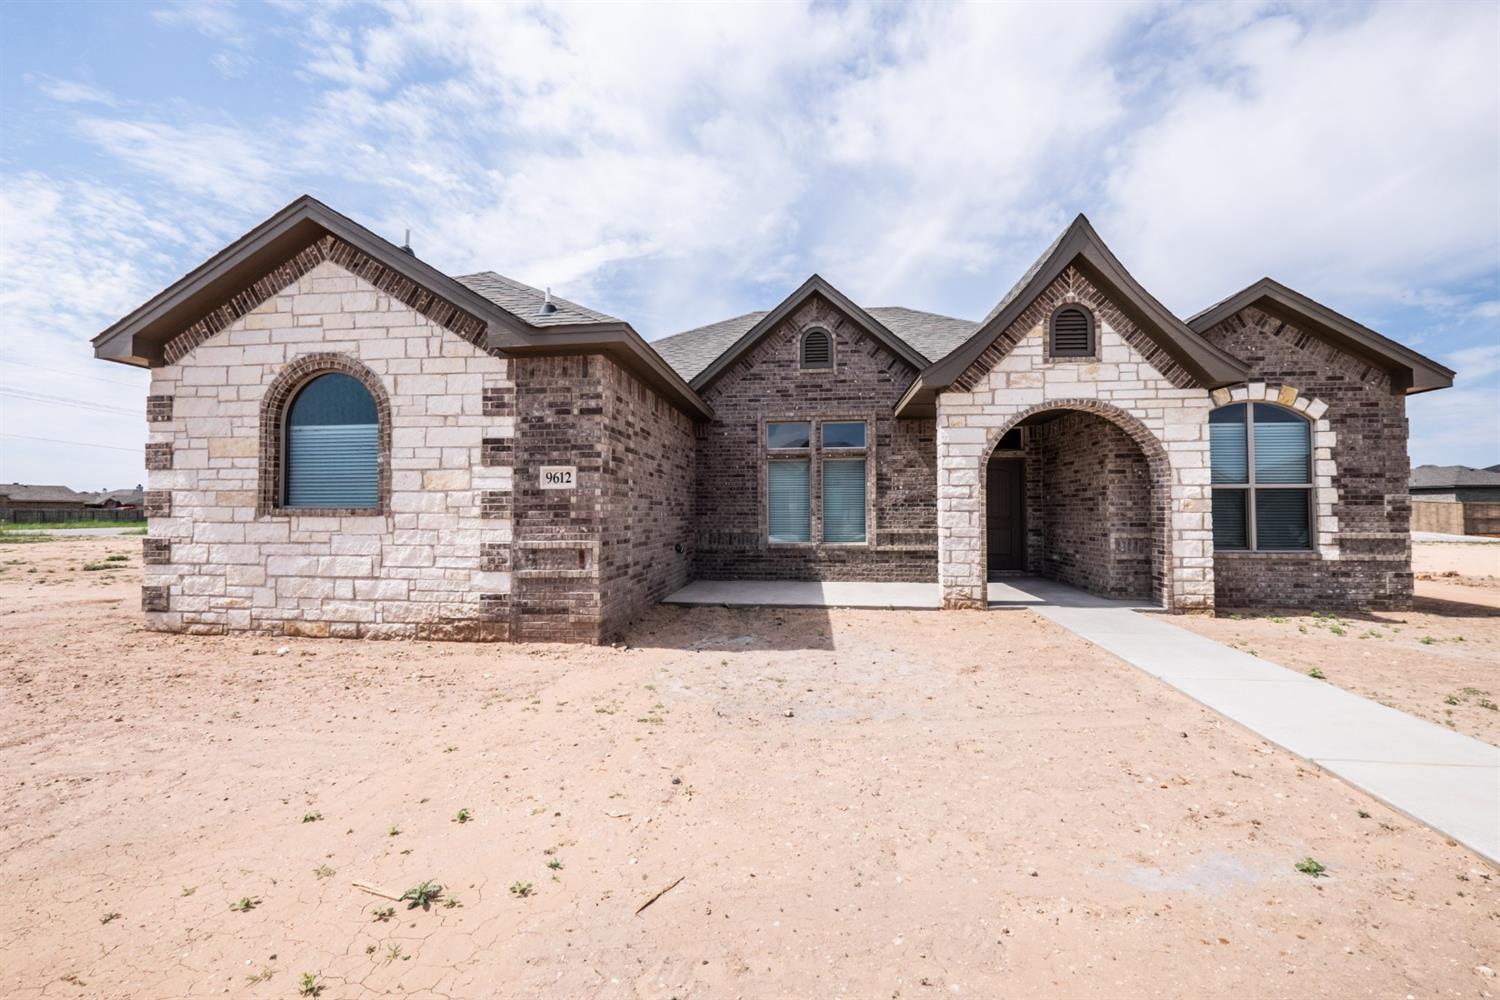 New construction 4 bedroom, 3 bathroom, and 2-car garage (rear entry) home in Day Estates neighborhood. Built for comfort and style, this beautiful brick and stone home has an open concept with 10' ceilings throughout entire house. Located in Frienship ISD, making it a great location! Special features include: double ovens in kitchen, electric fireplace with oak mantle, granite countertops throughout, walk-in closet in Master bedroom, a jet tub in master bath, and vinyl plank flooring in living room and kitchen.